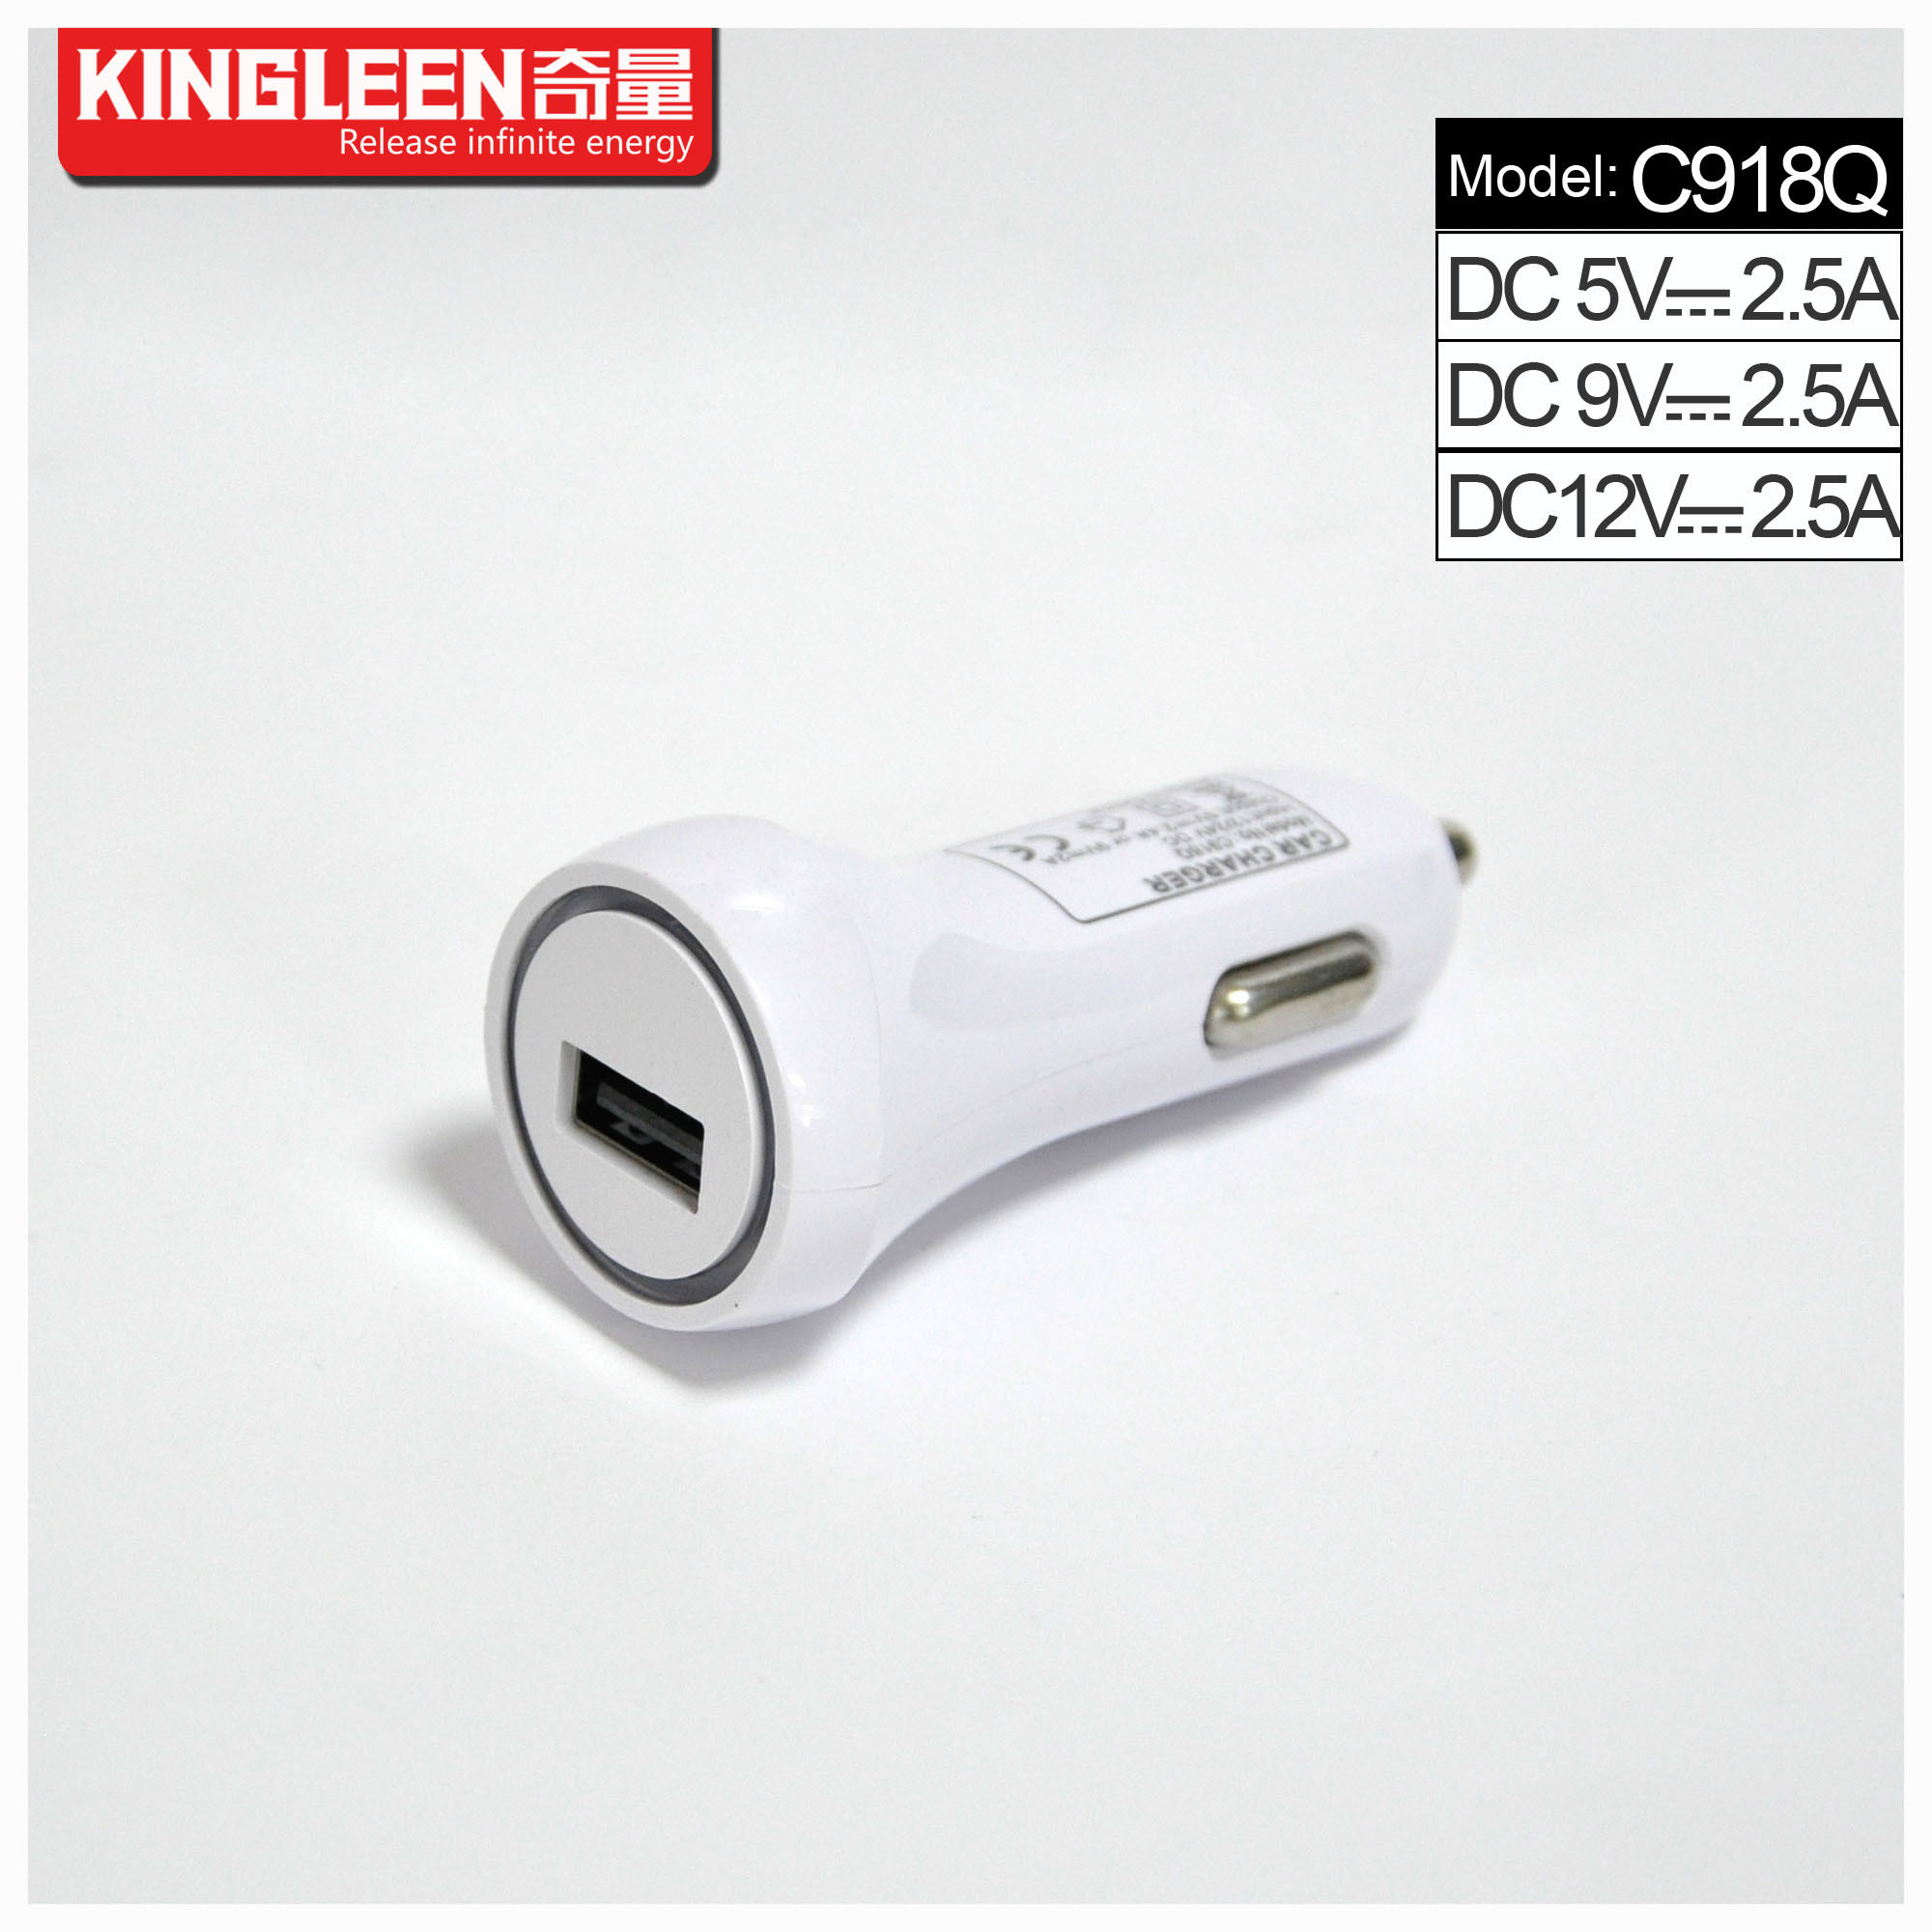 Kingleen Model C918q Quick Charger 3.0 Single USB Battery Car Charger Factory Outlet